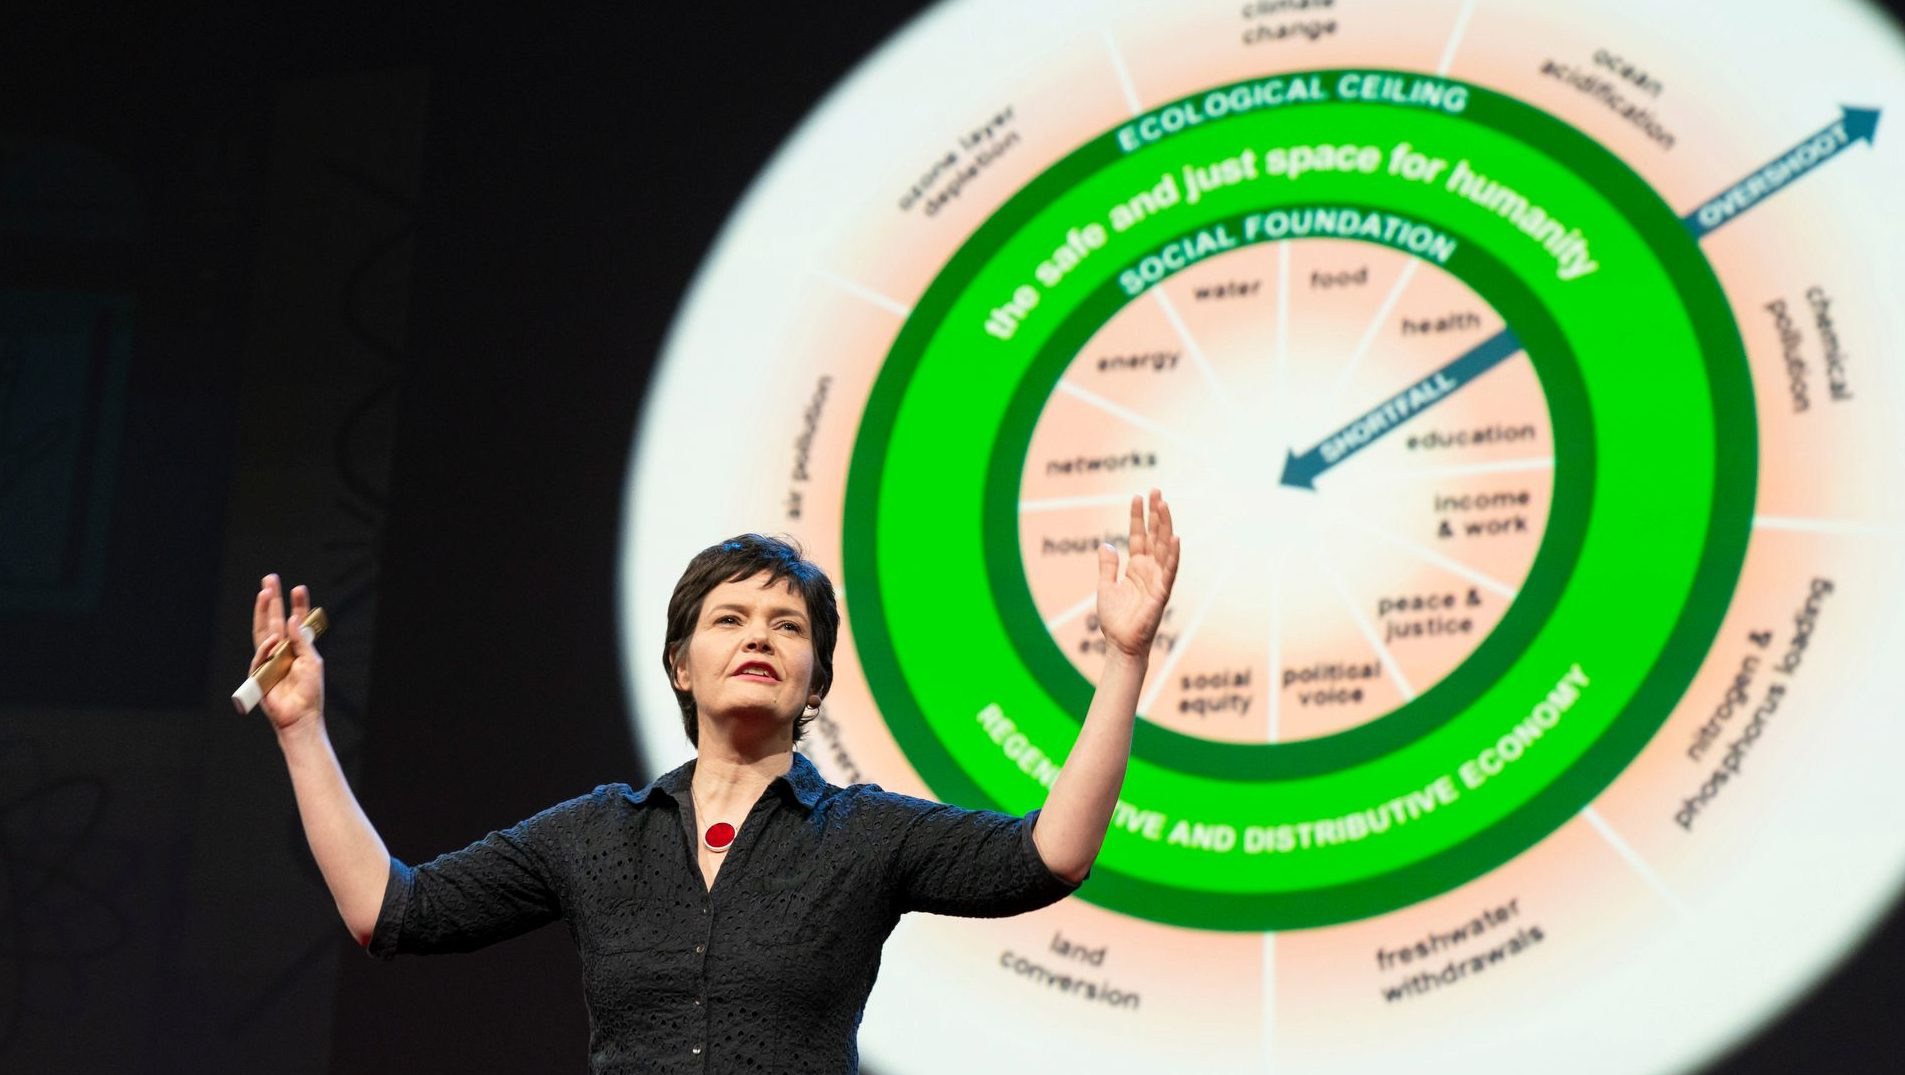 Kate Raworth speaks at TED2018 - The Age of Amazement, April 10 - 14, 2018, Vancouver, BC, Canada. Photo: Kate Raworth speaks at TED2018 - The Age of Amazement, April 10 - 14, 2018, Vancouver, BC, Canada. Photo: Bret Hartman / TED